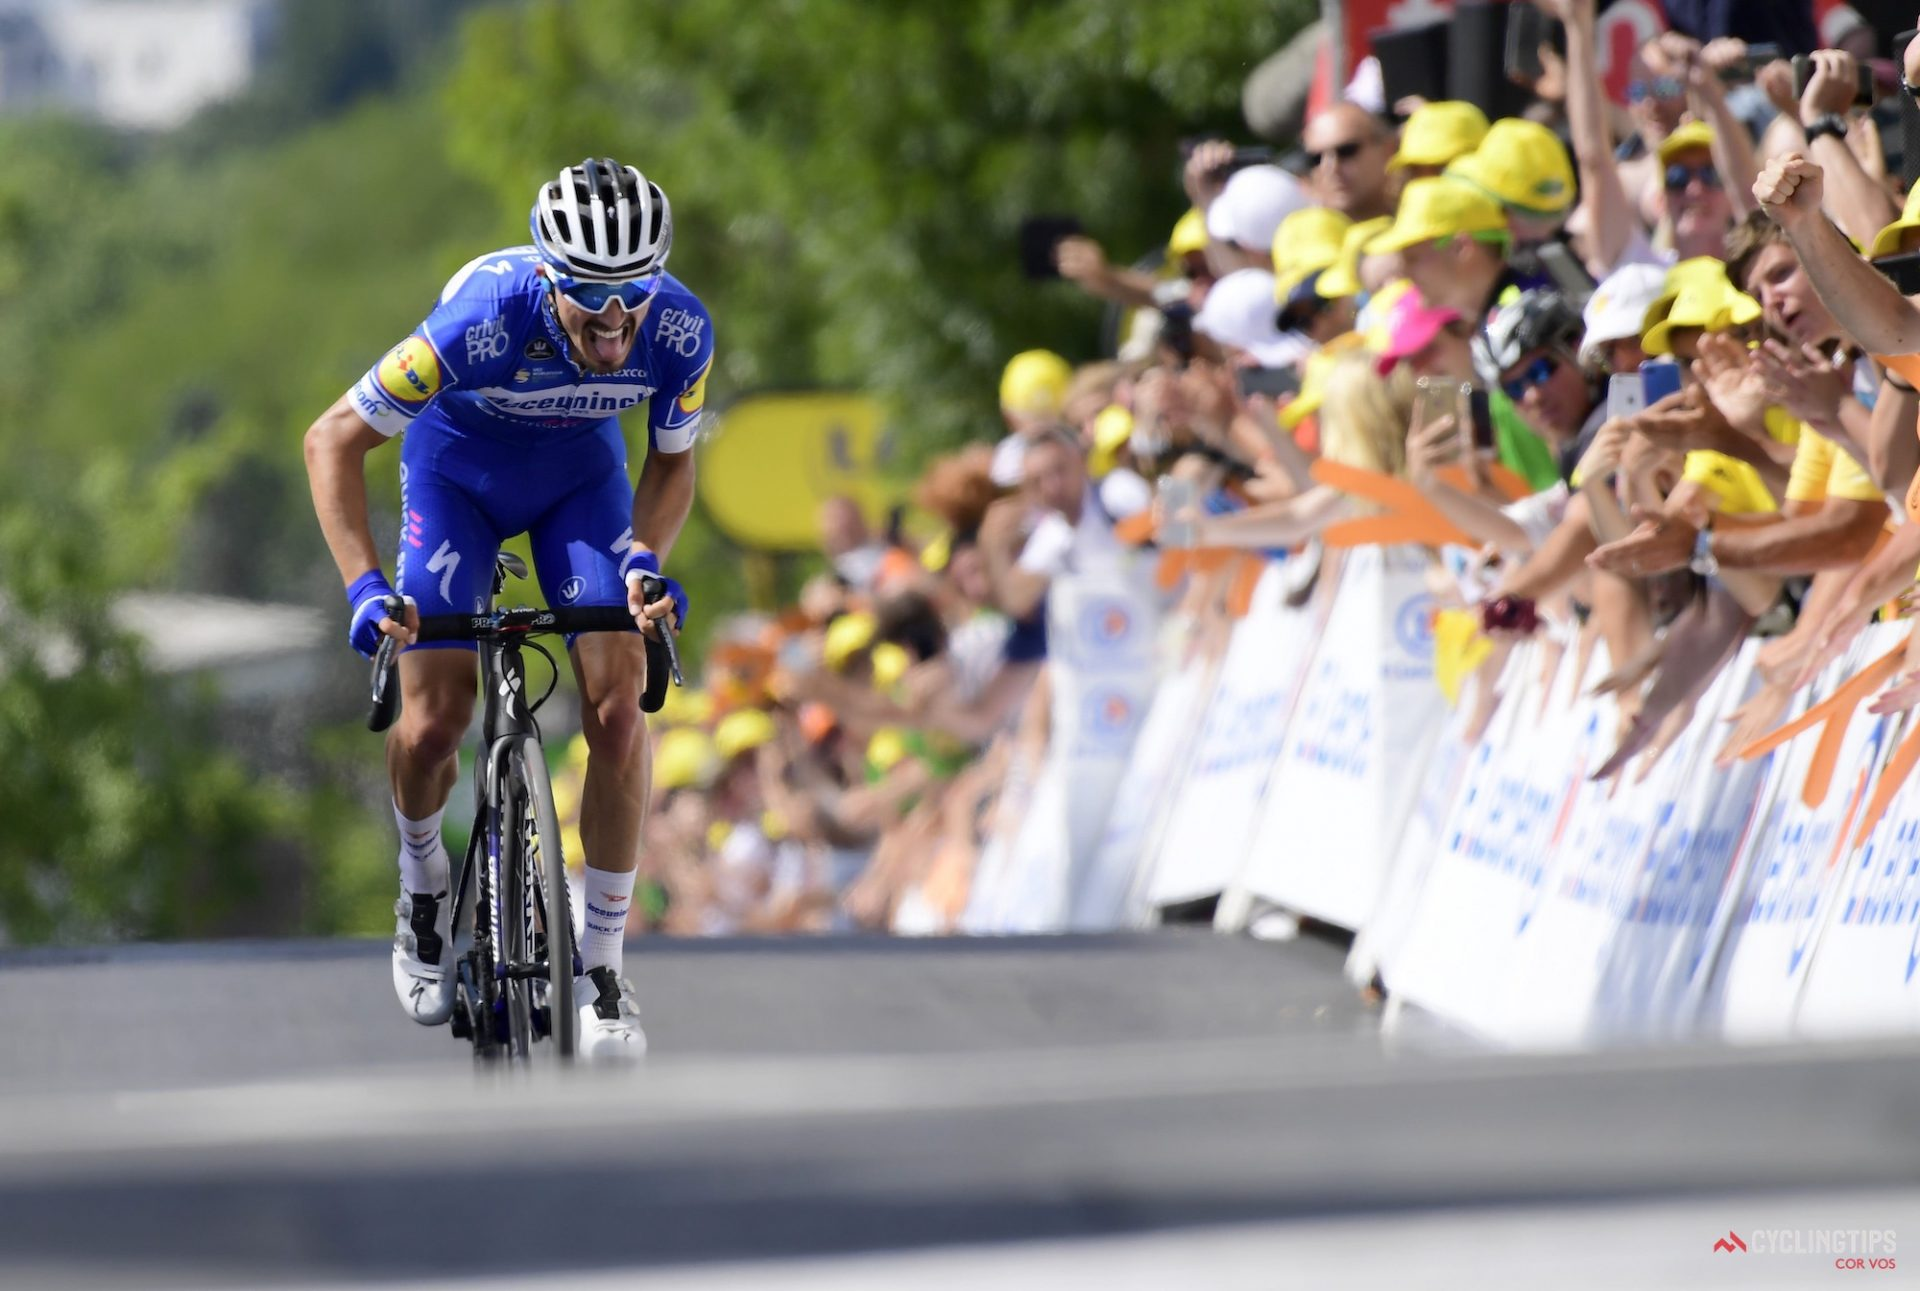 Alaphilippe Takes Stage 3 Tour de France Victory 12